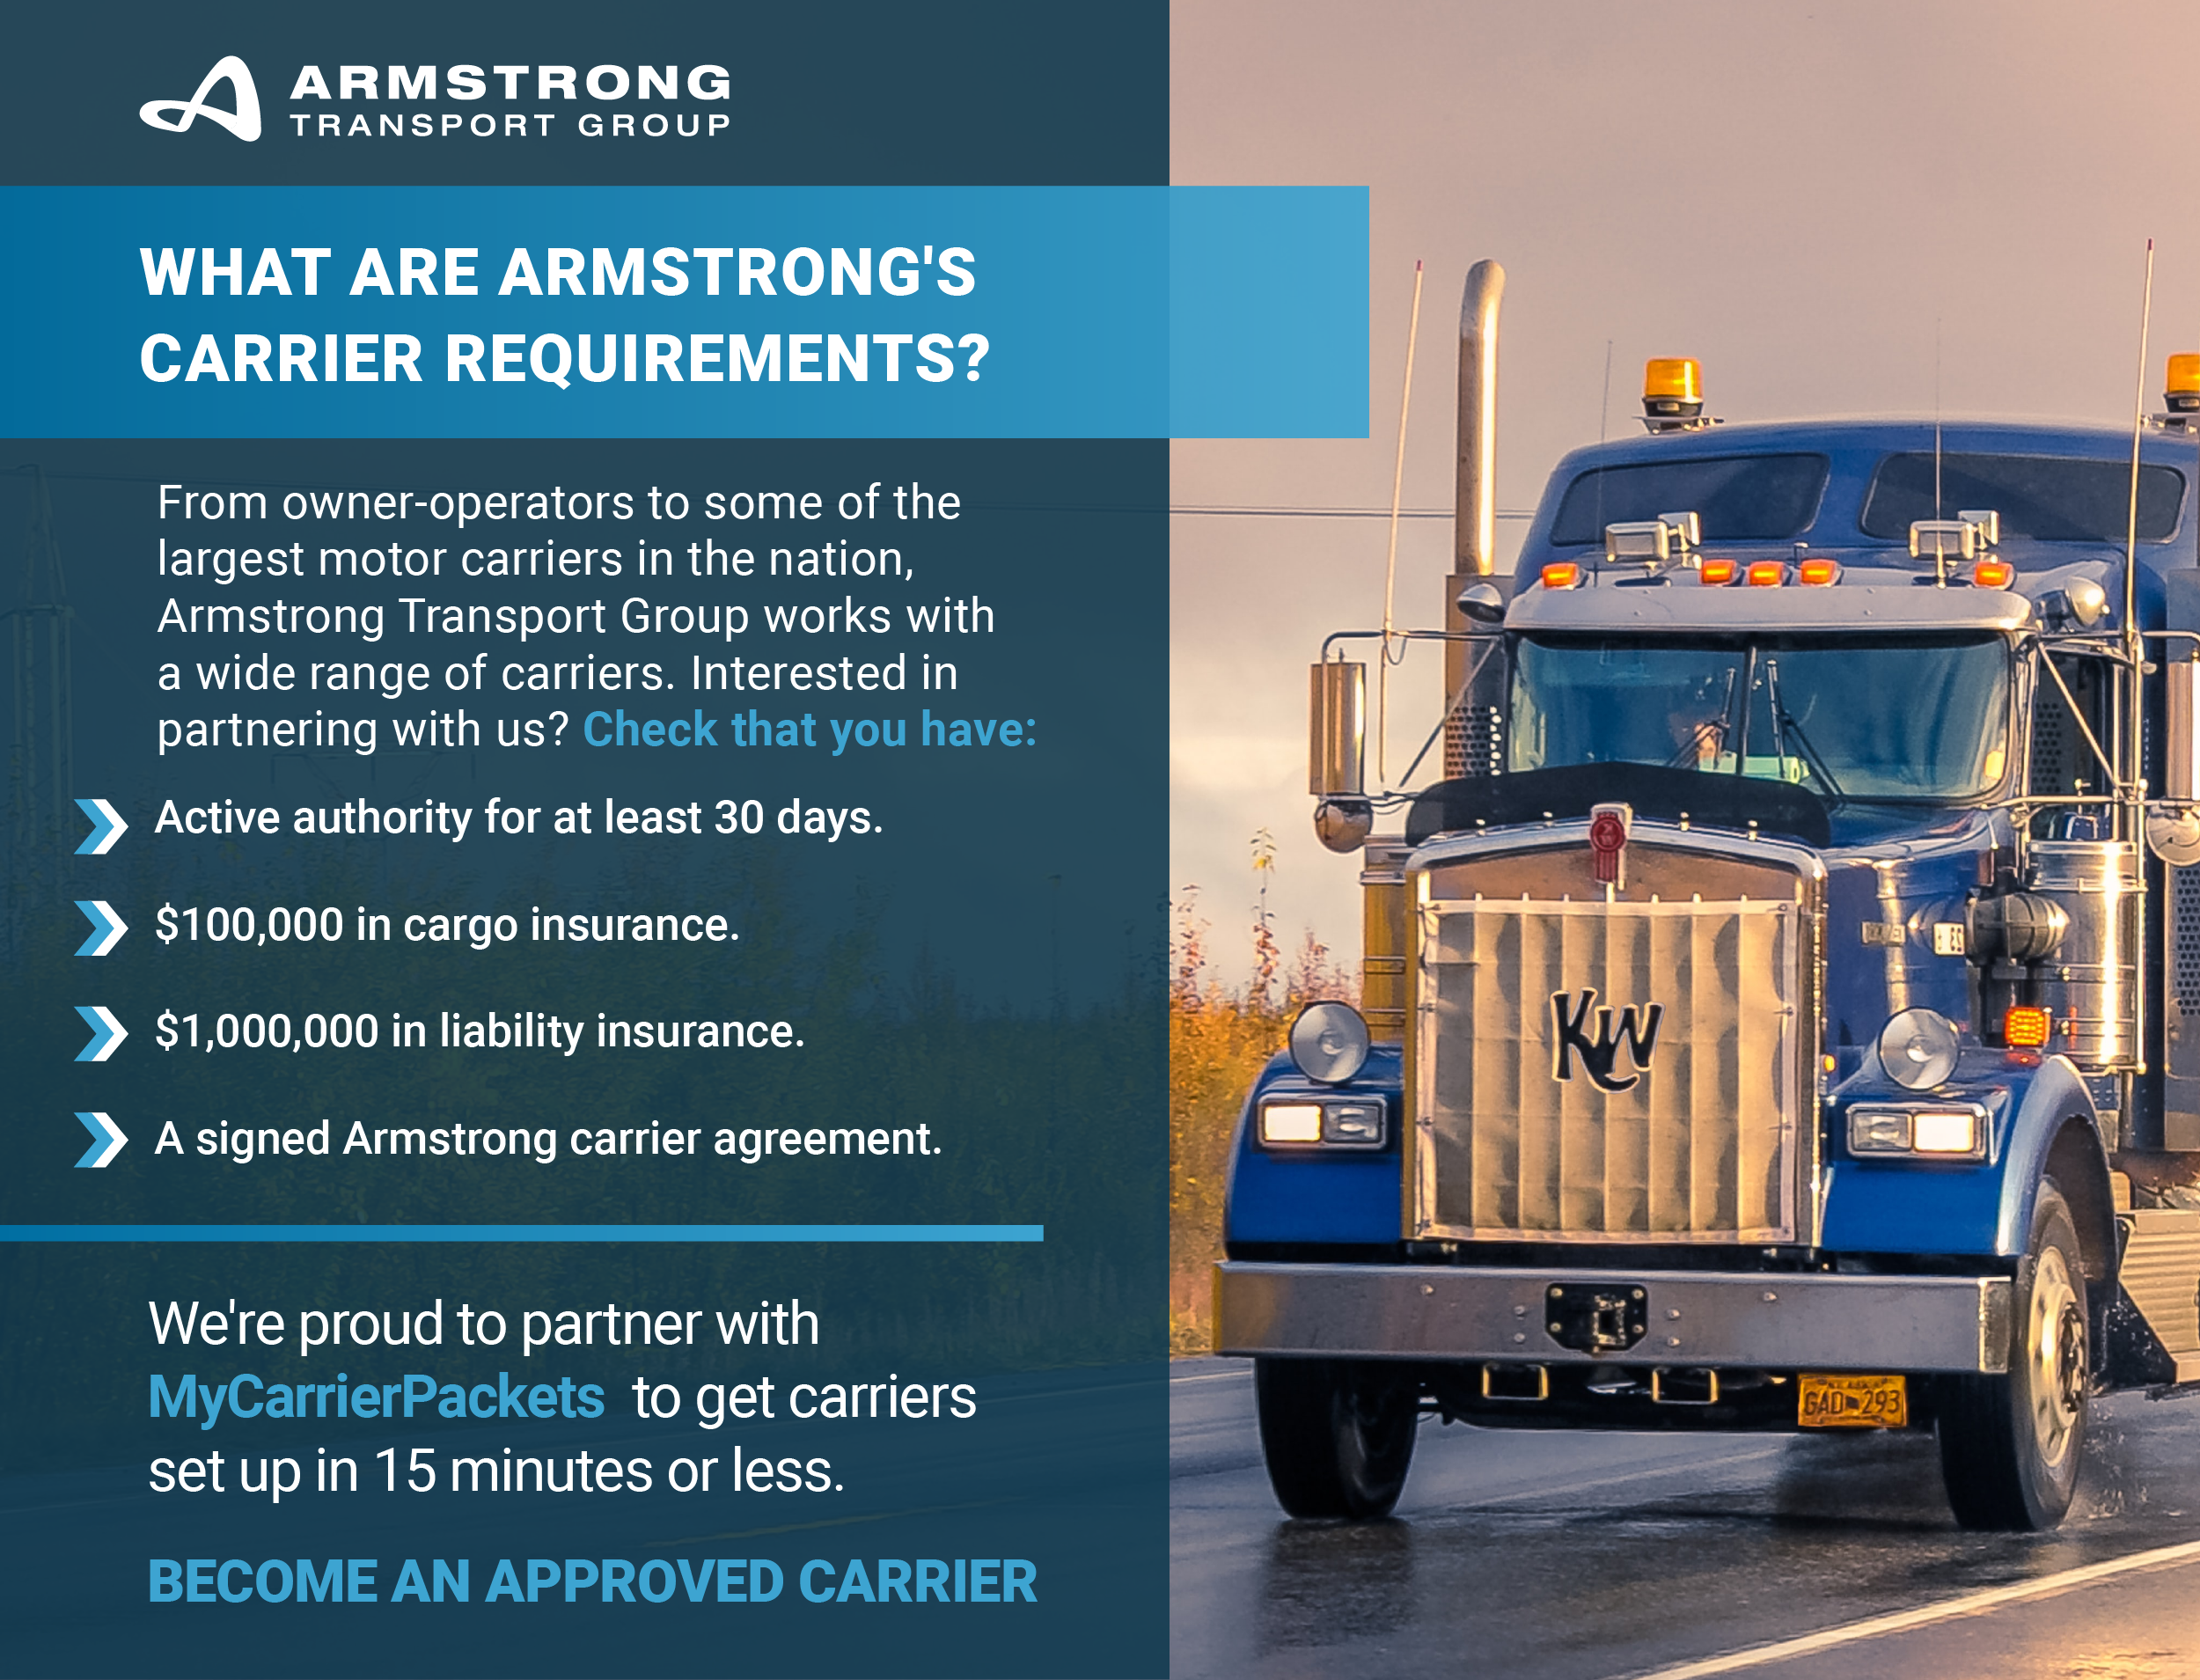 Armstrong Transport Group Carrier Requirements